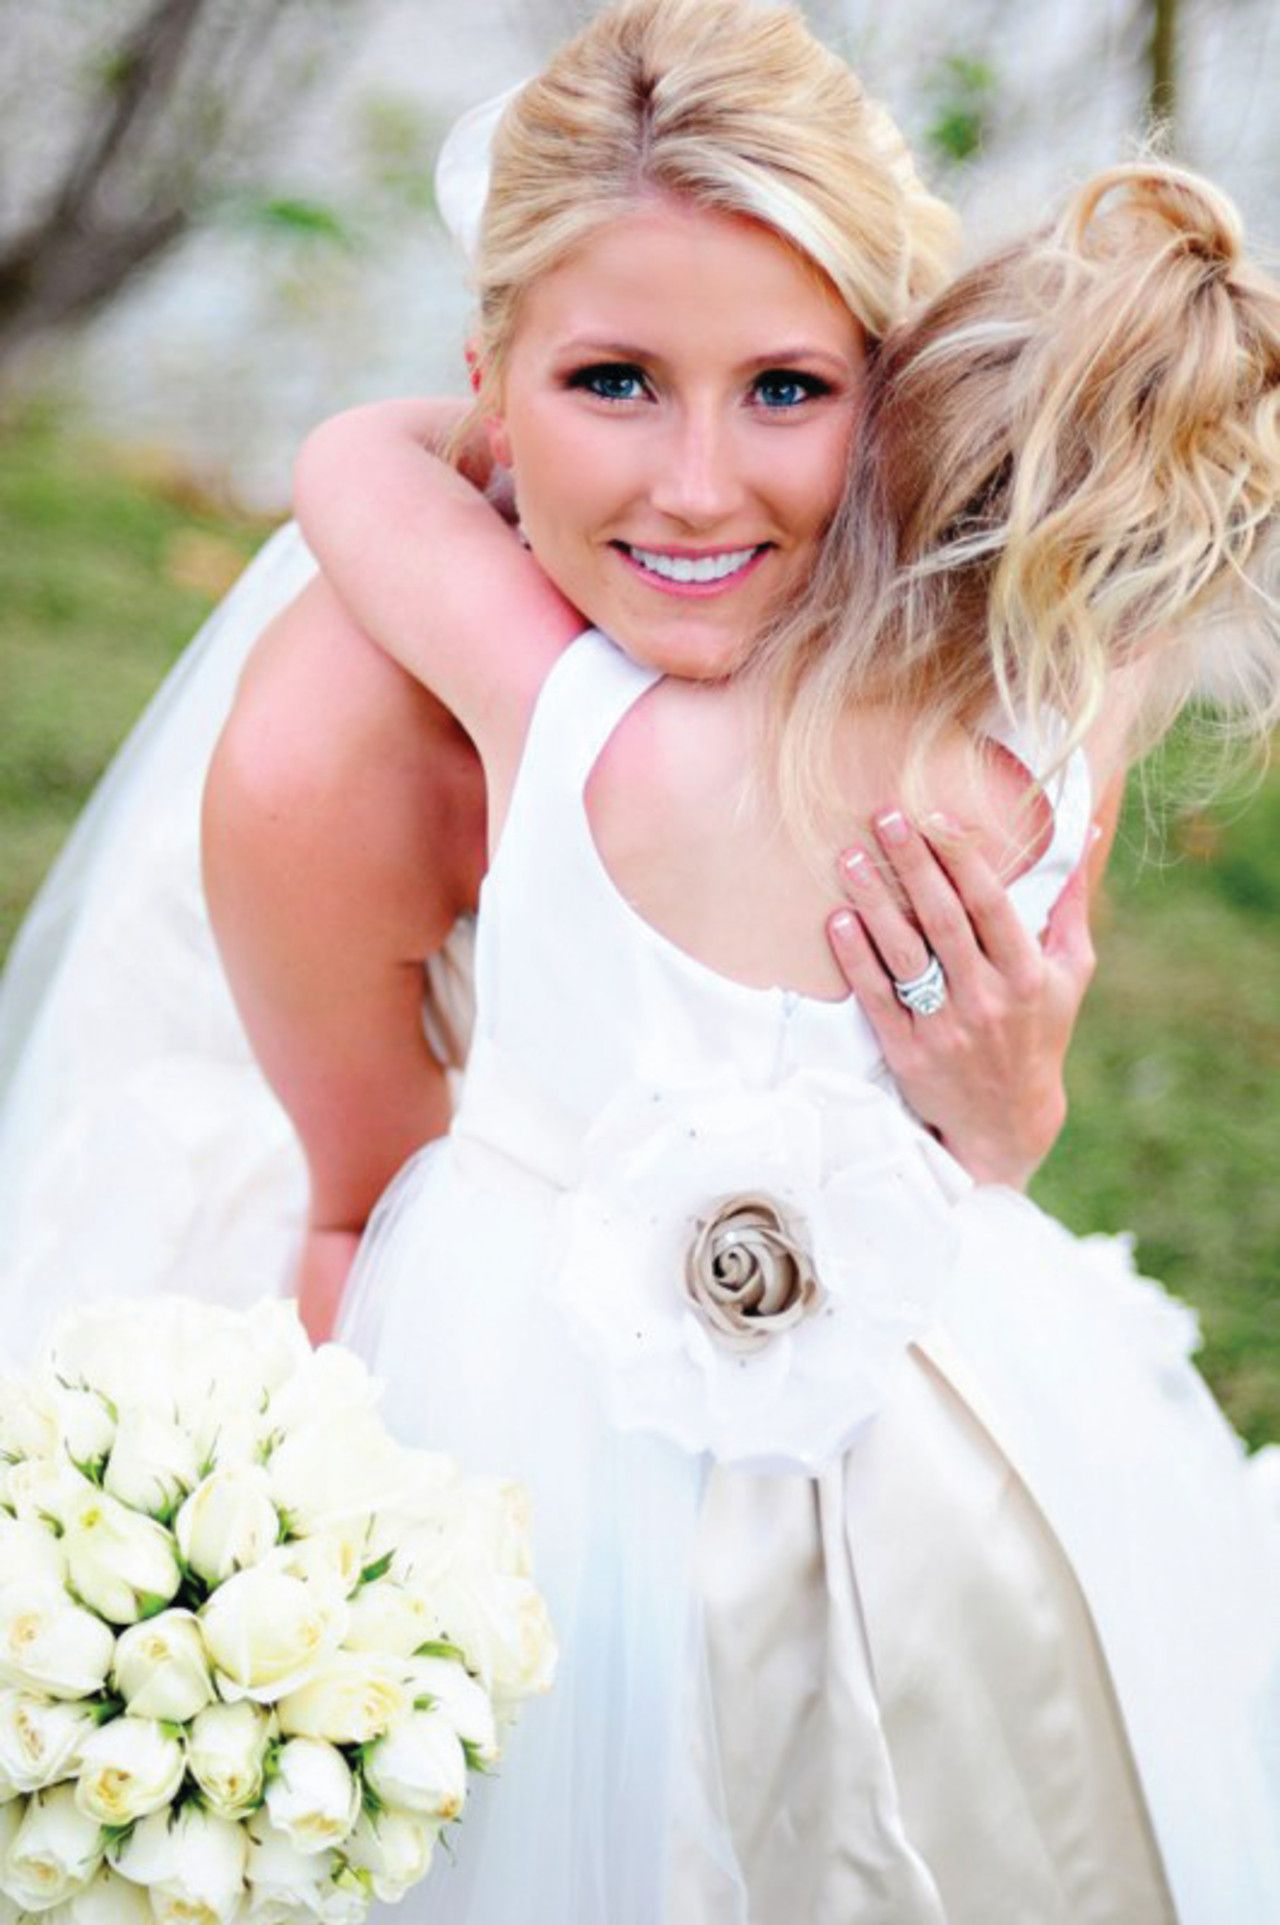 Real wedding @ Four Seasons Resort Costa Rica - gorgeous bride and ...